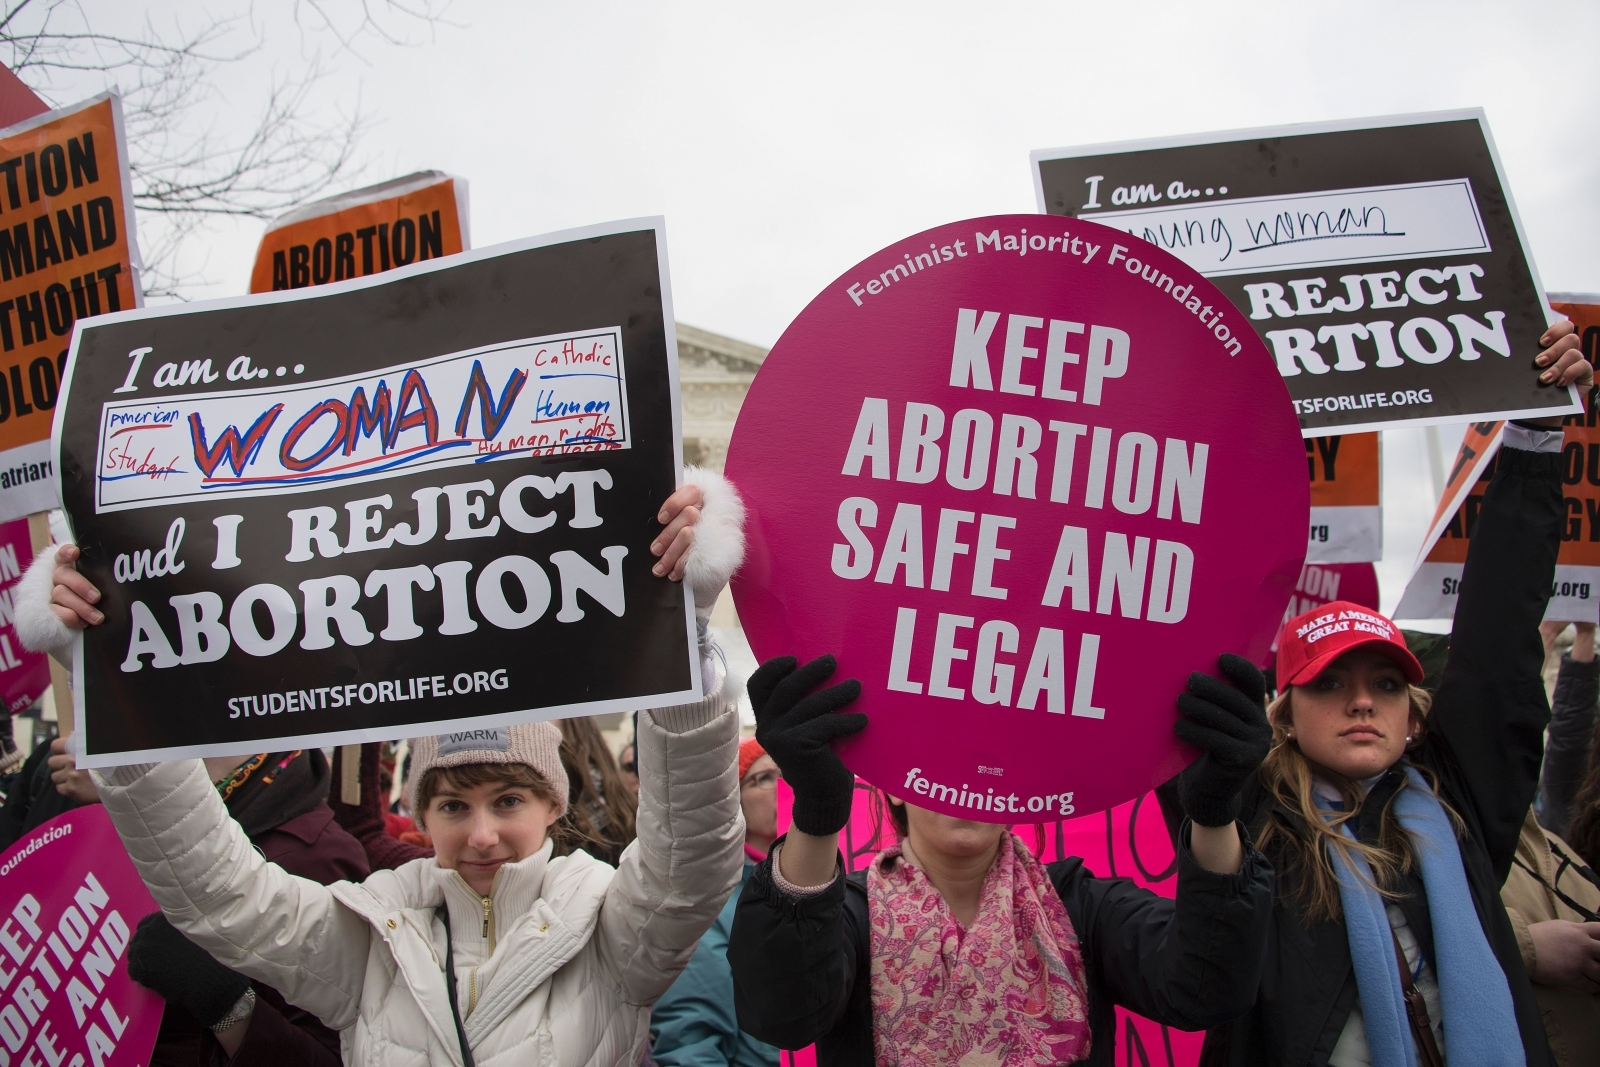 Pro-choice and pro-life abortion activists